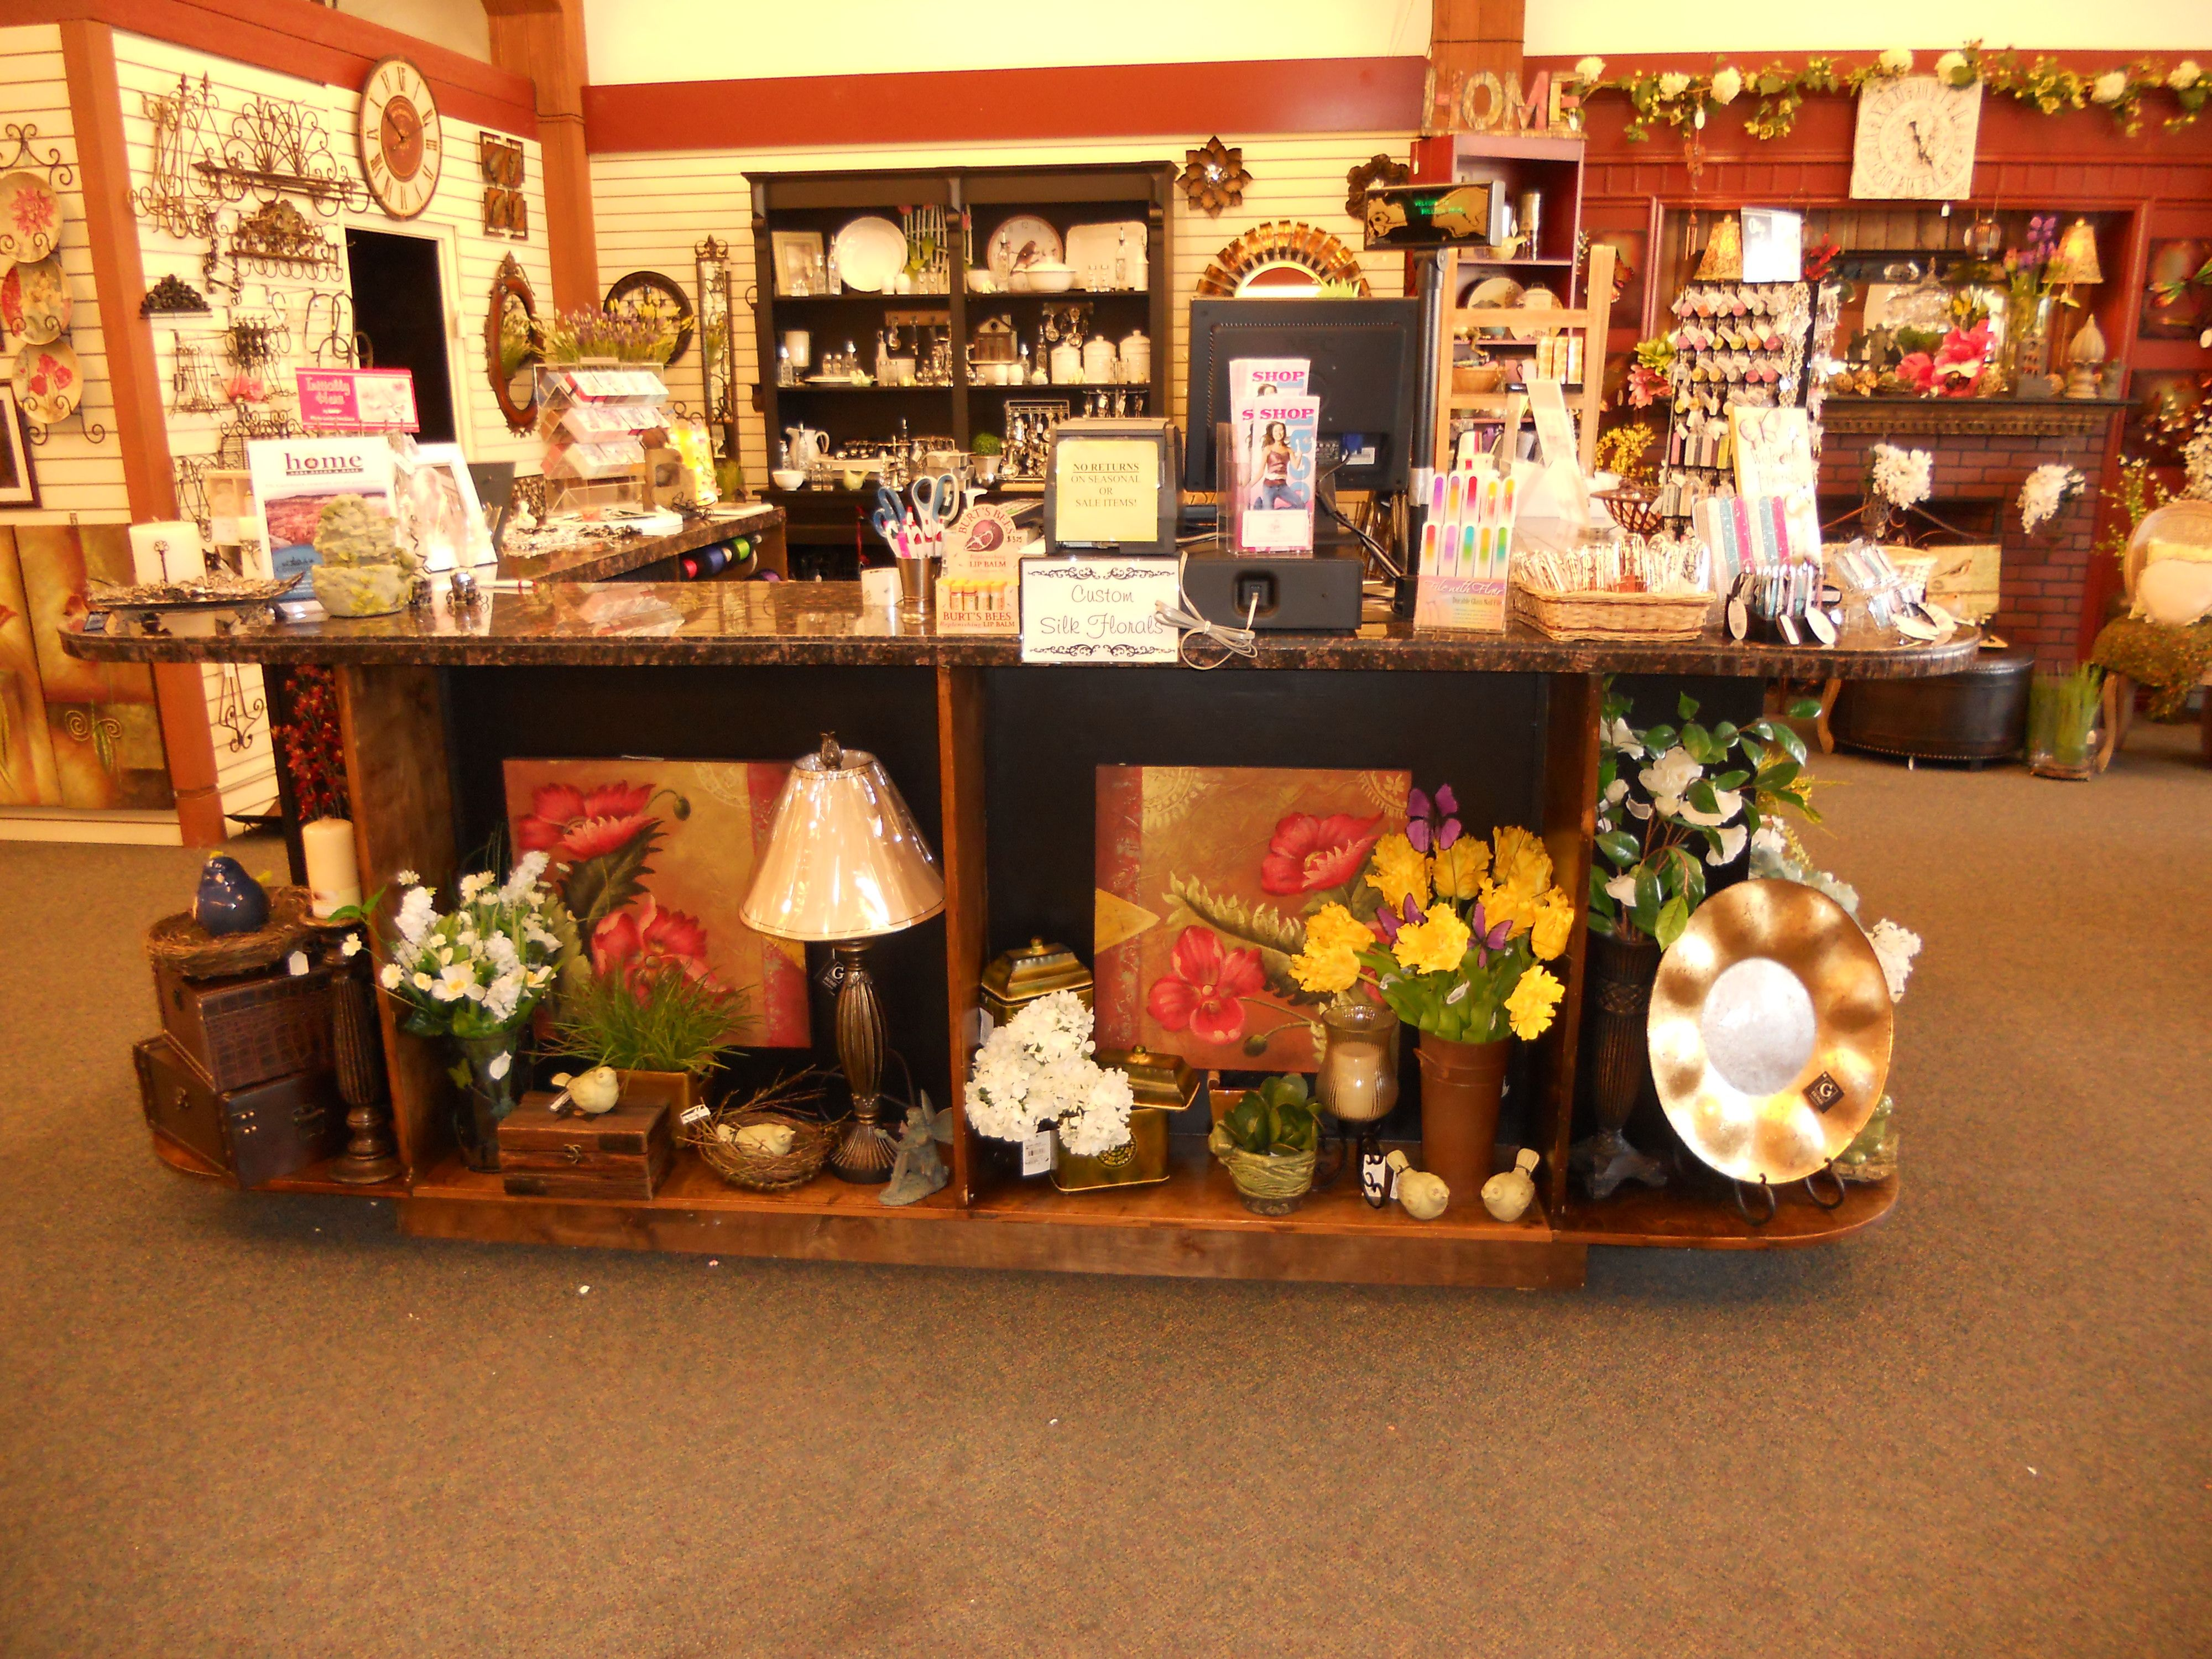 Retail Store Display Ideas | Check Out Counter With Display Area On The Base